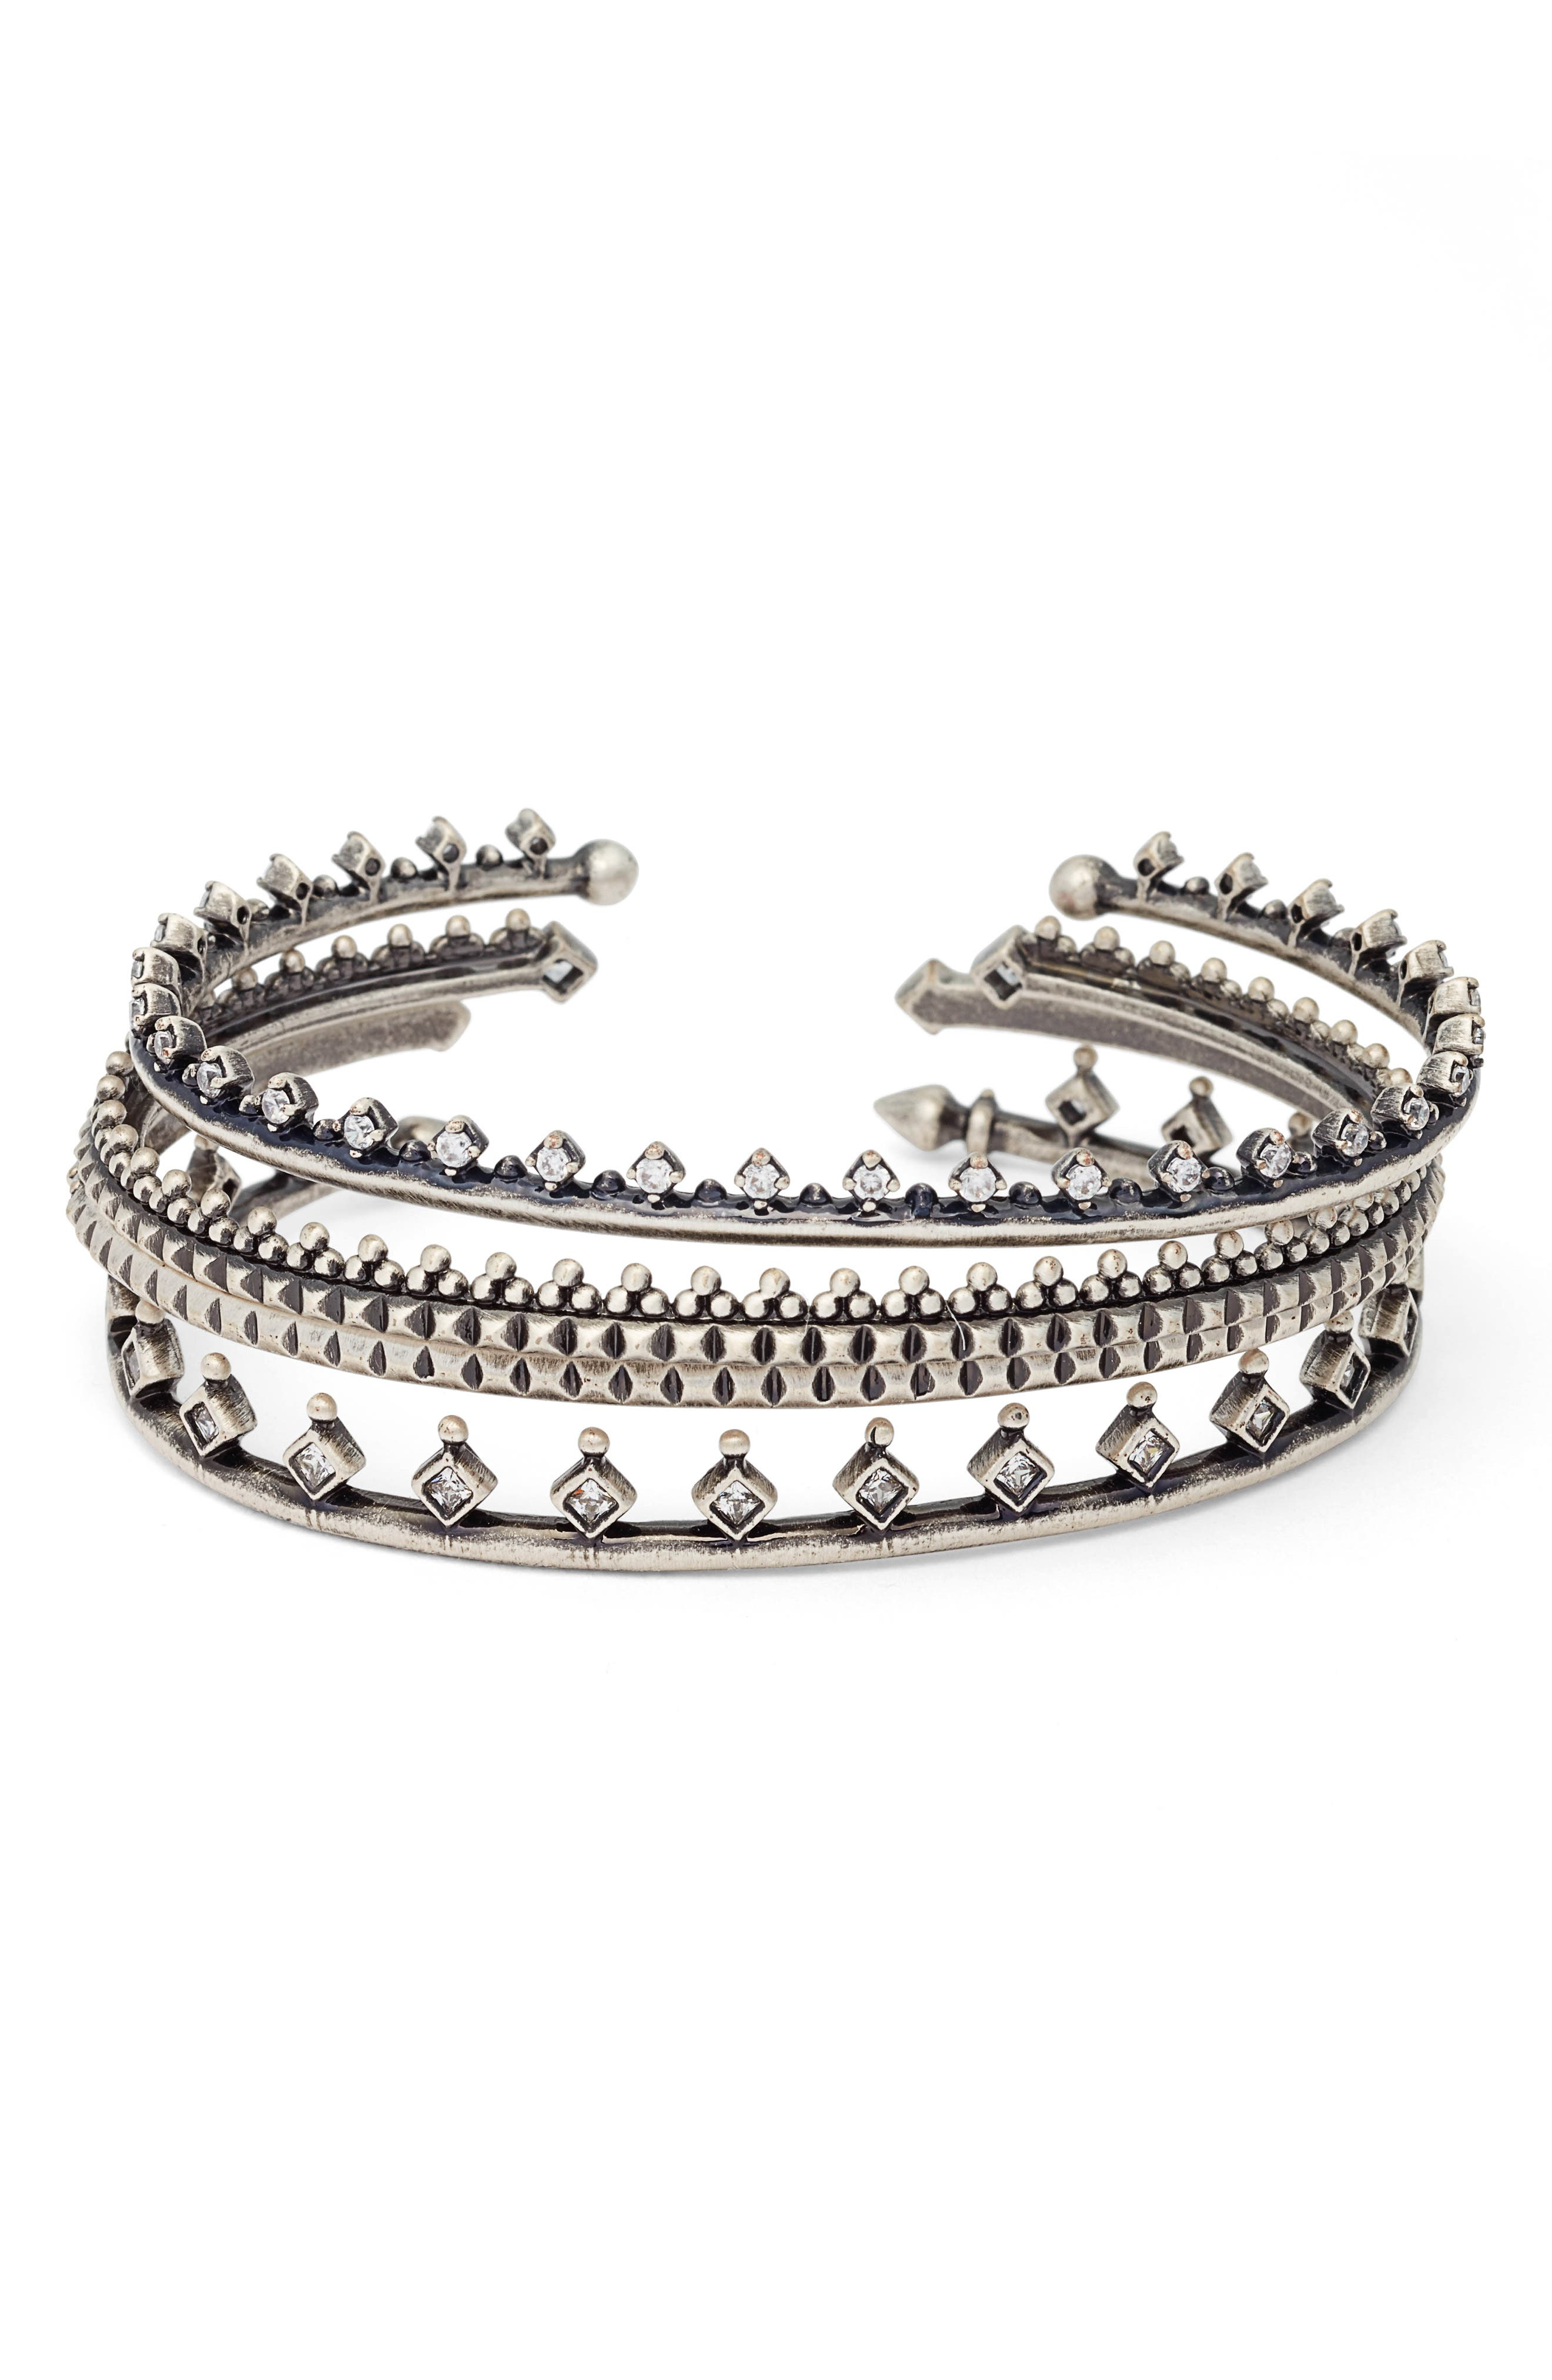 Alternate Image 1 Selected - Kendra Scott Delphine Set of 4 Stackable Cuffs